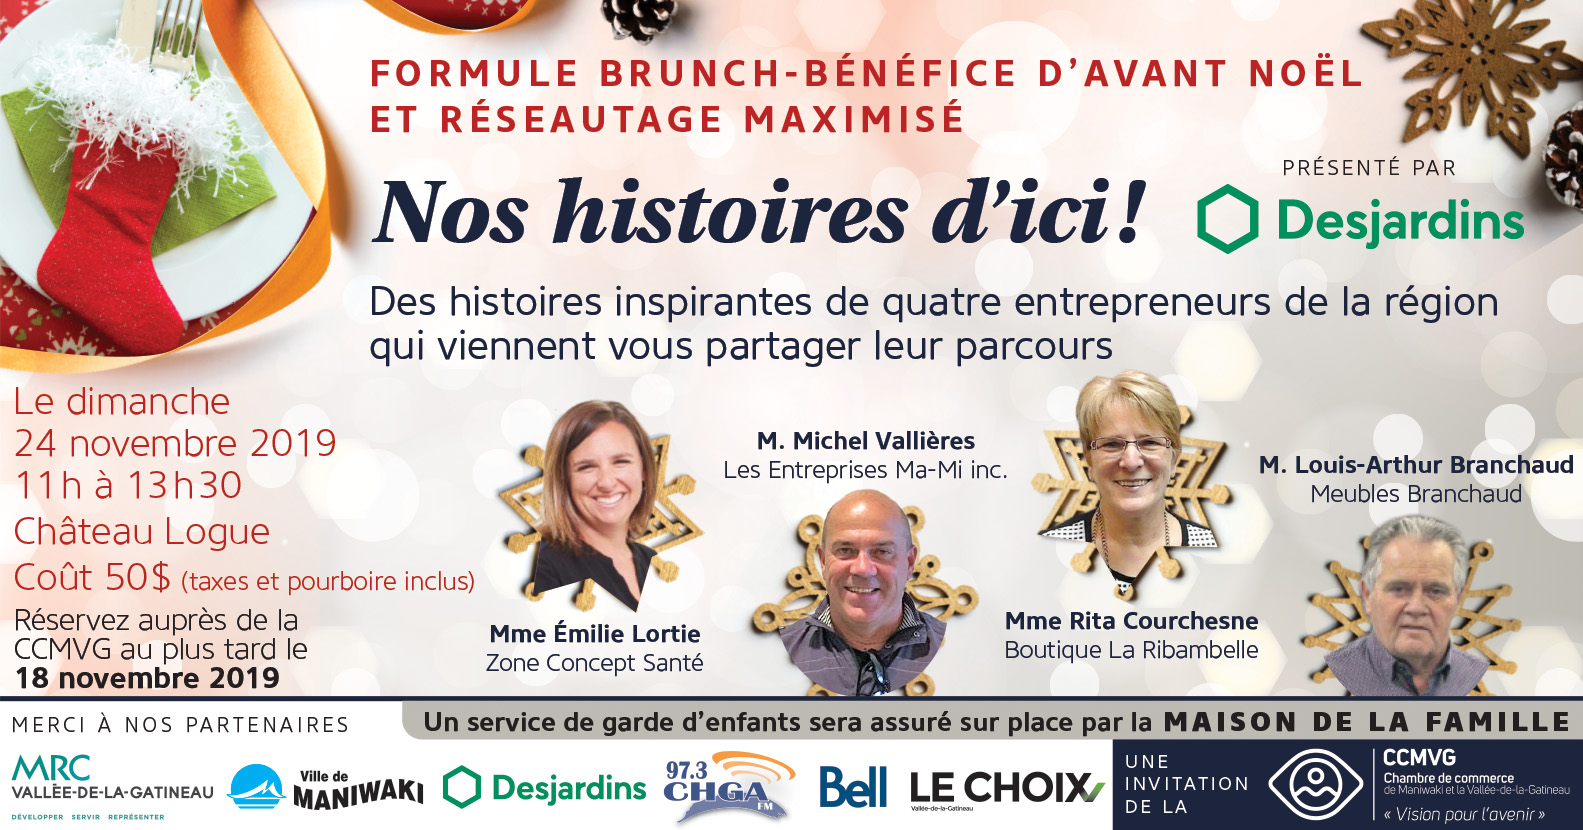 Brunch dAvant Noël 2019 Réf FB